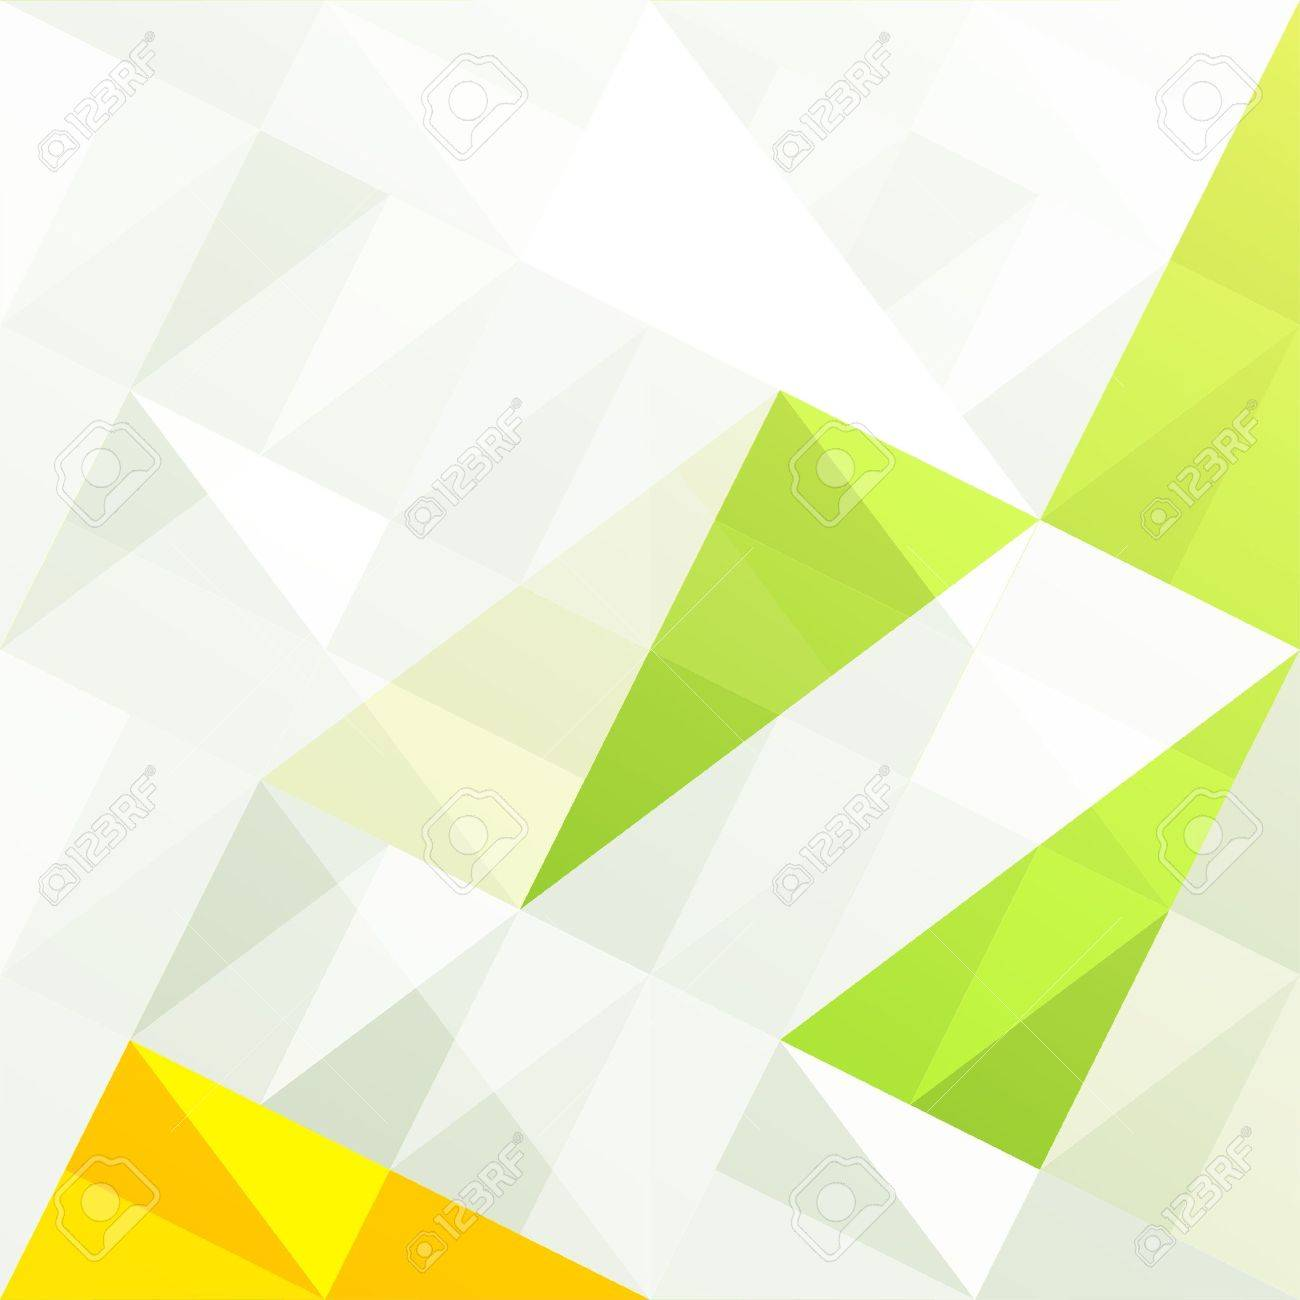 Green gamut geometric abstract background Stock Photo - 14707146